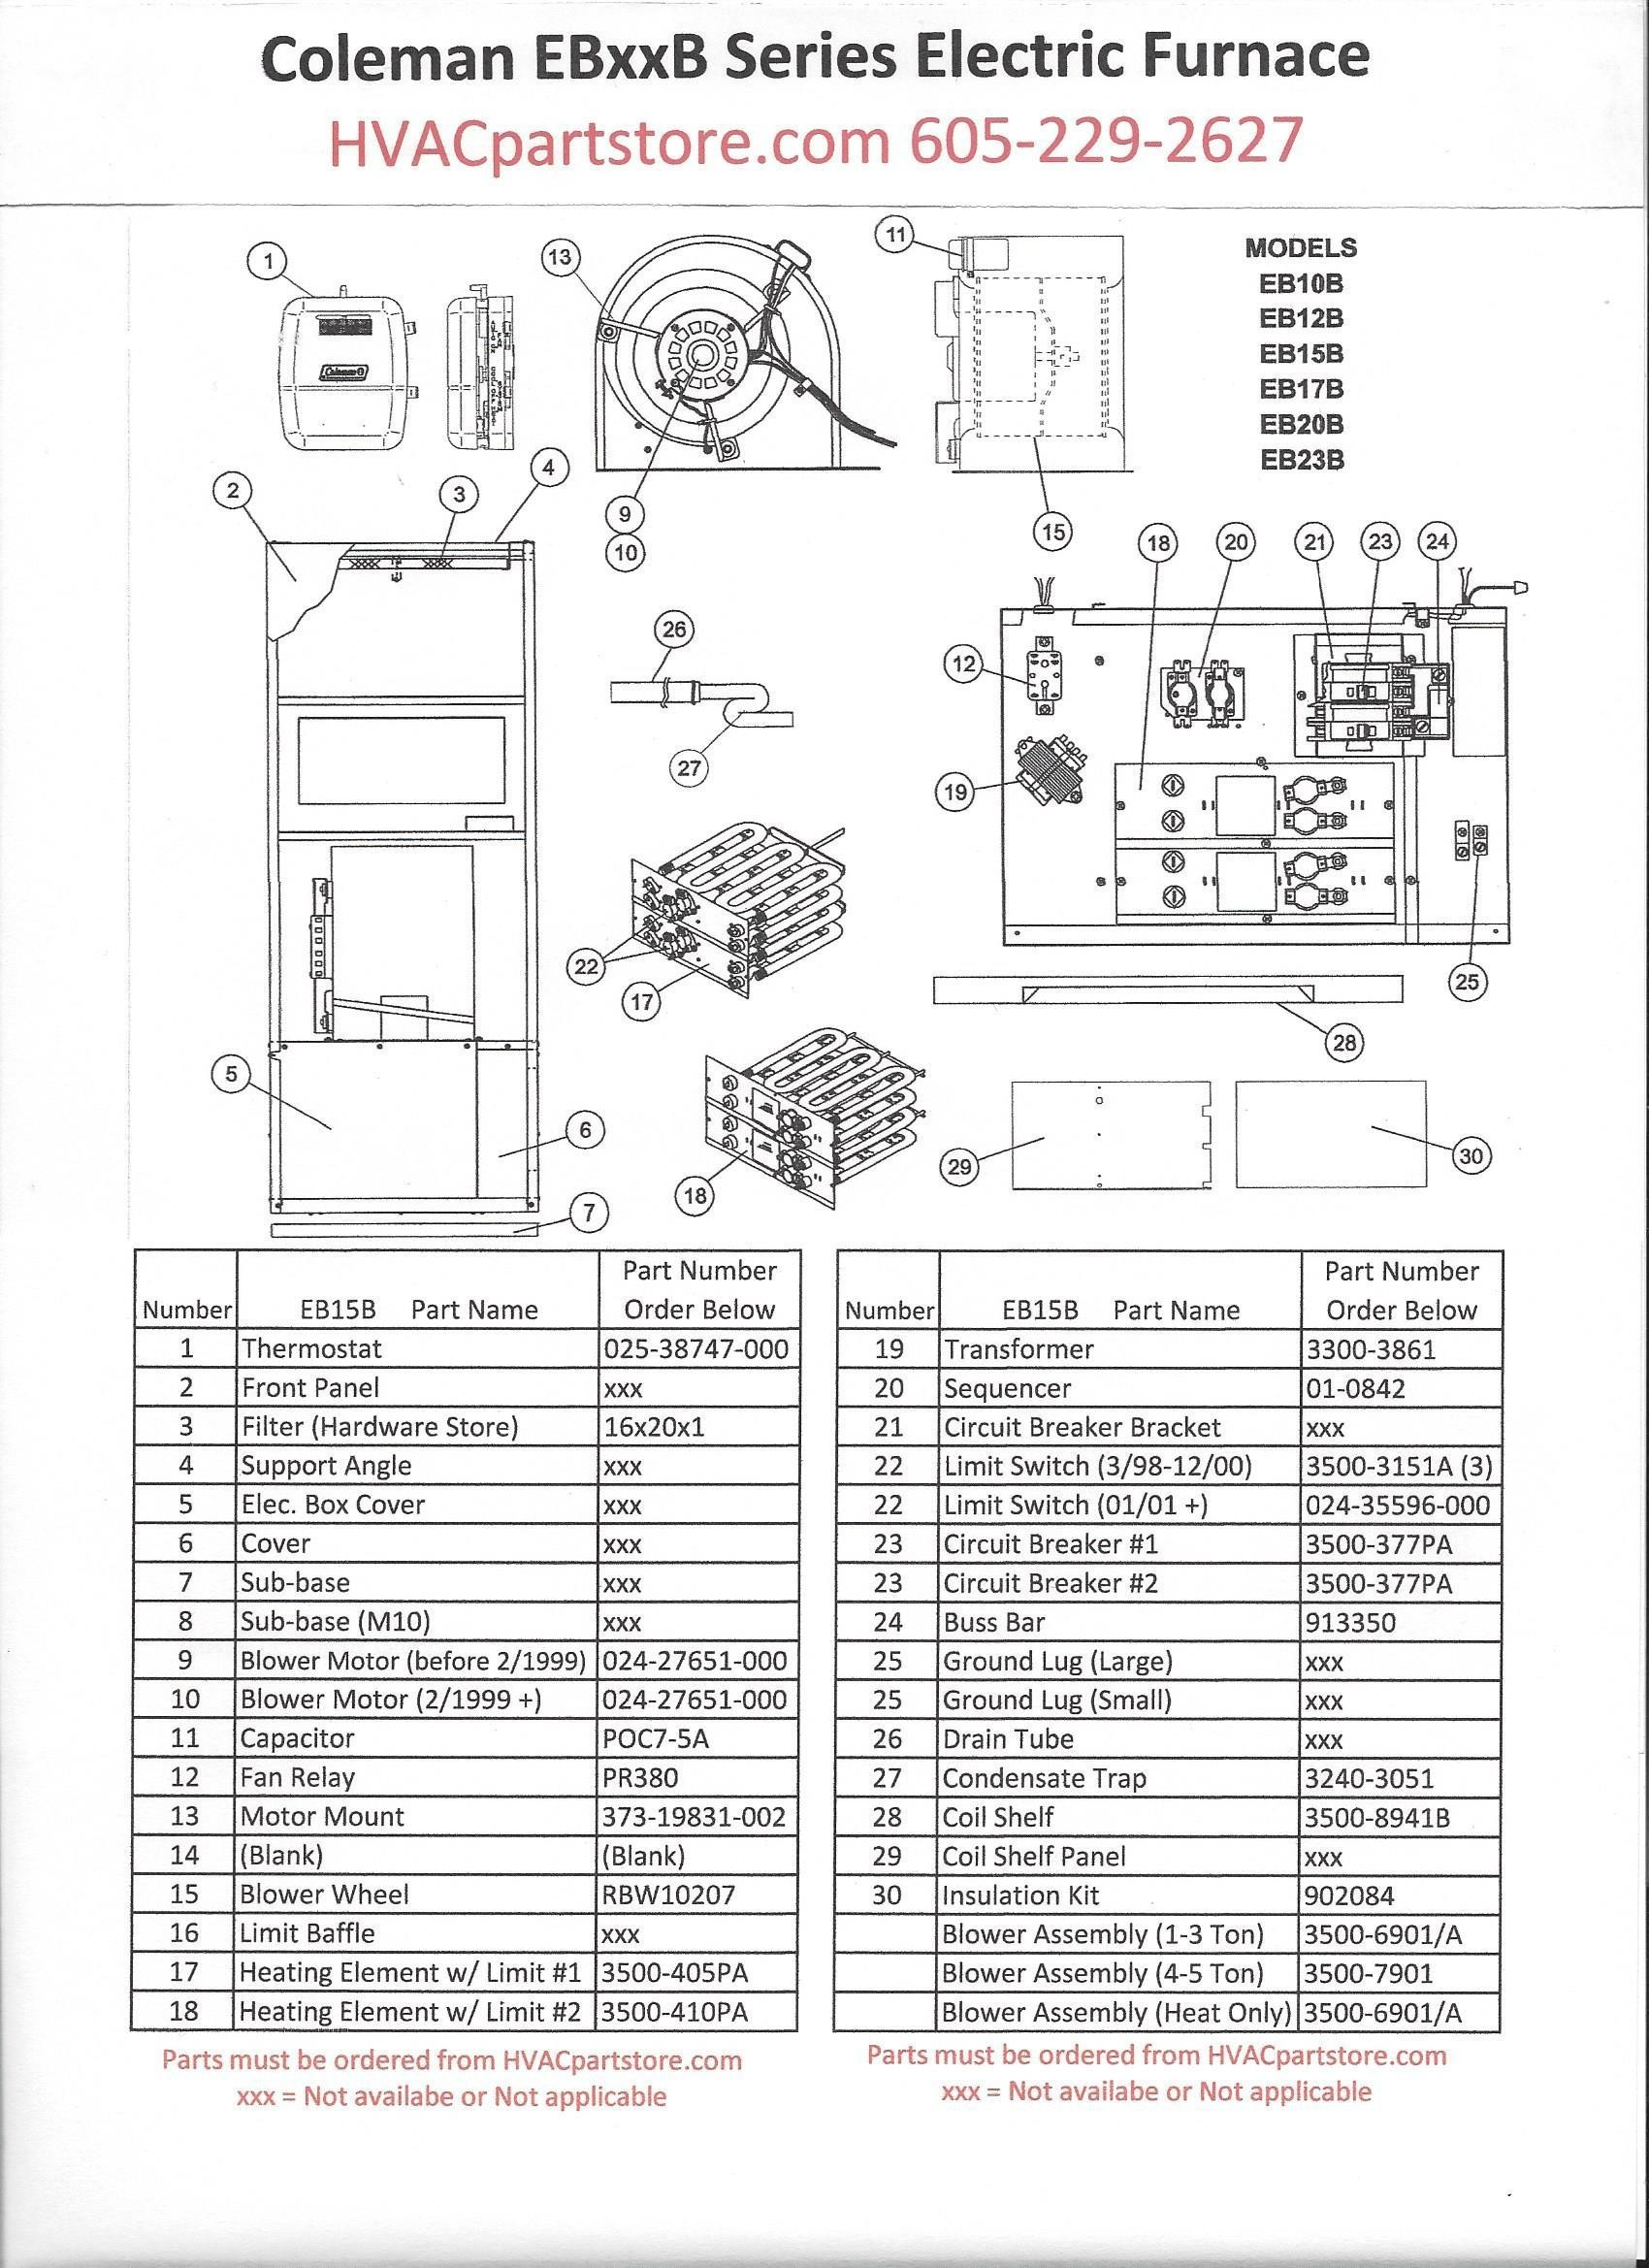 Mobile Home Furnace Wiring Diagram - Wiring Diagram Perfomance on gas furnace wiring diagram, coleman presidential furnace wiring diagram, american standard furnace wiring diagram, furnace blower wiring diagram, janitrol furnace wiring diagram, miller furnace wiring diagram, coleman heat pump wiring diagram, coleman air conditioning wiring diagram, coleman rv furnace wiring diagram, carrier furnace wiring diagram, luxaire furnace wiring diagram, coleman gas furnace diagram, york furnace wiring diagram, whirlpool furnace wiring diagram, evcon mobile home furnace diagram, modine furnace wiring diagram, bryant furnace wiring diagram, coleman furnace thermostat wiring diagram, coleman furnace troubleshooting, mobile home furnace wiring diagram,